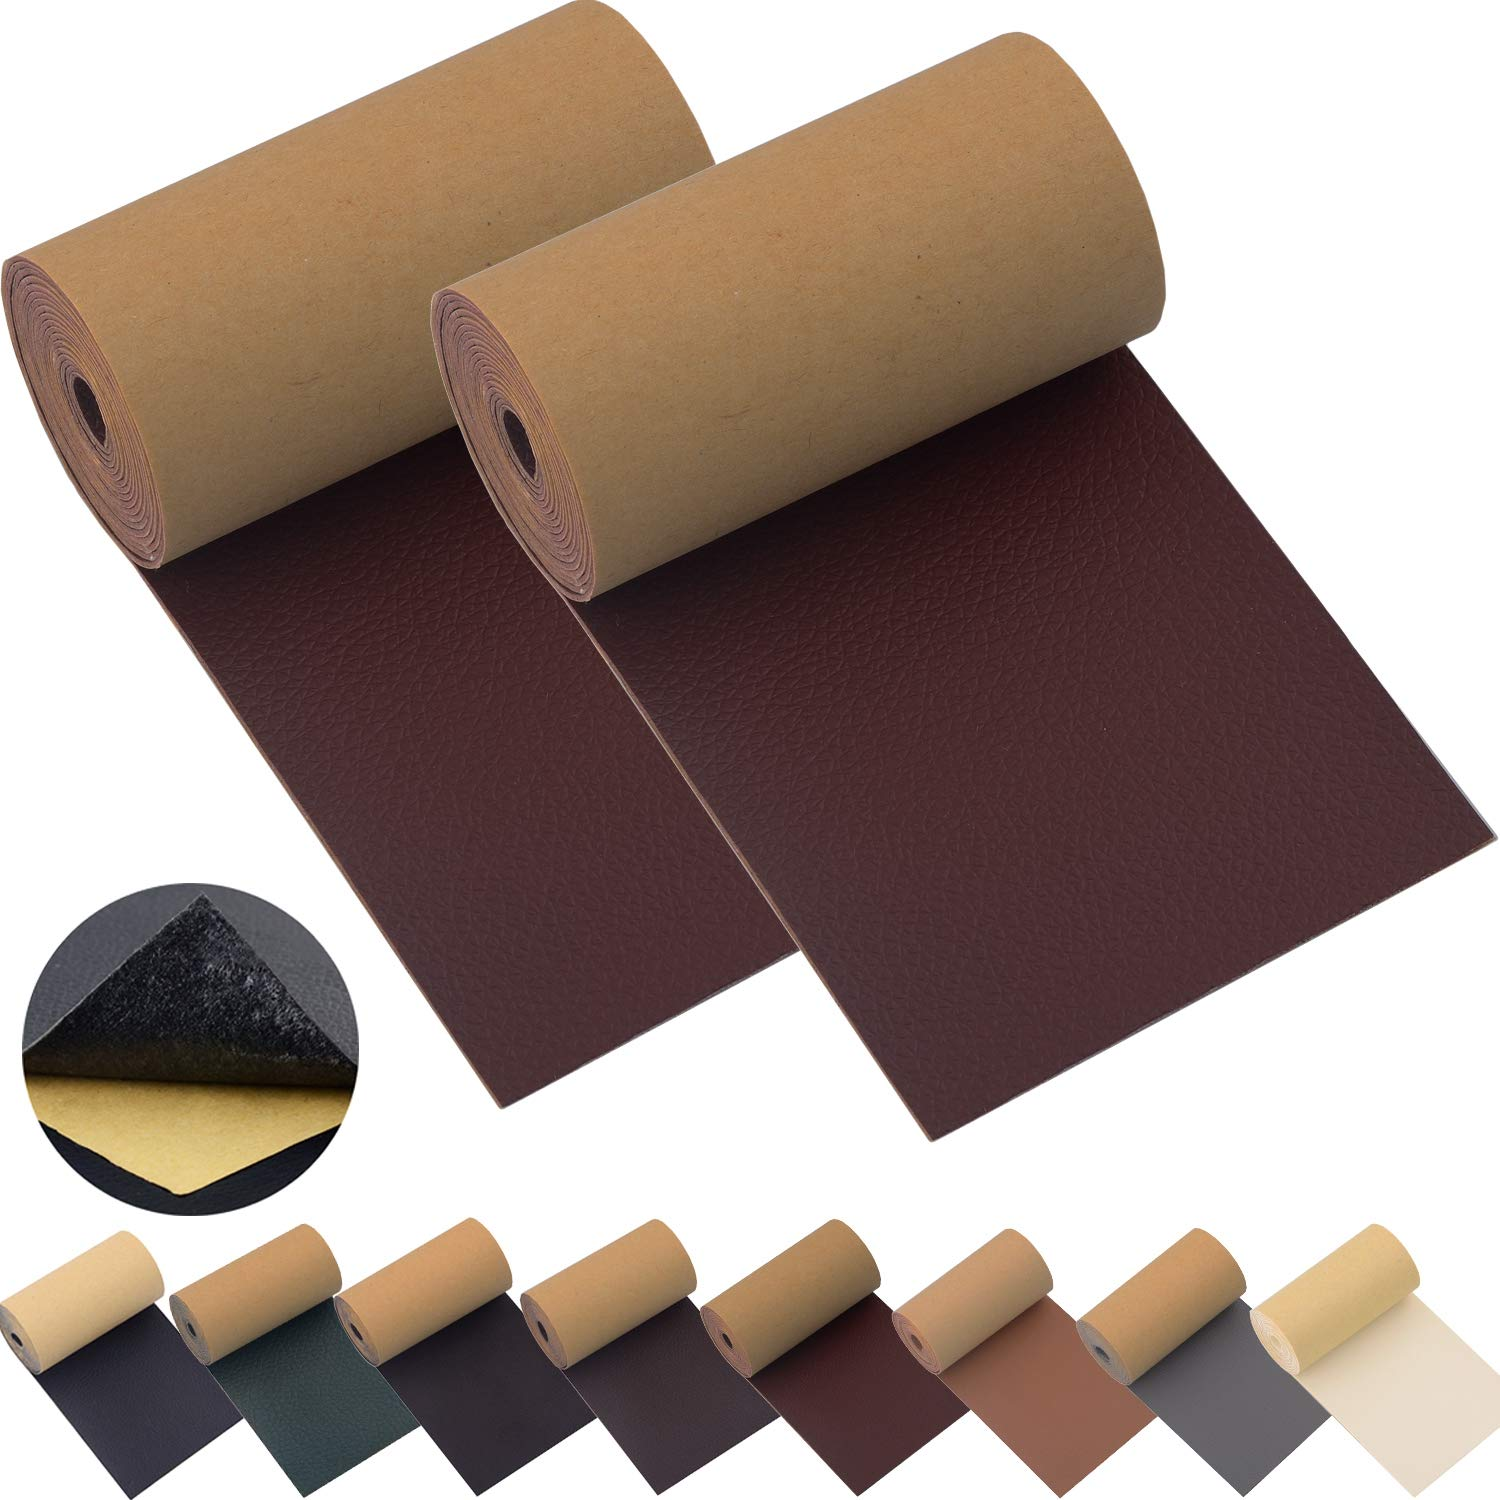 Leather Repair Patch Tape for Couches 2packs 3X55inch Self-Adhesive for Furniture Sofa Vinyl Car Seats Couch Chairs Shoes Down Jackets First Aid Patch Fix Tear Kit (M. Brown, 3X55 inch)